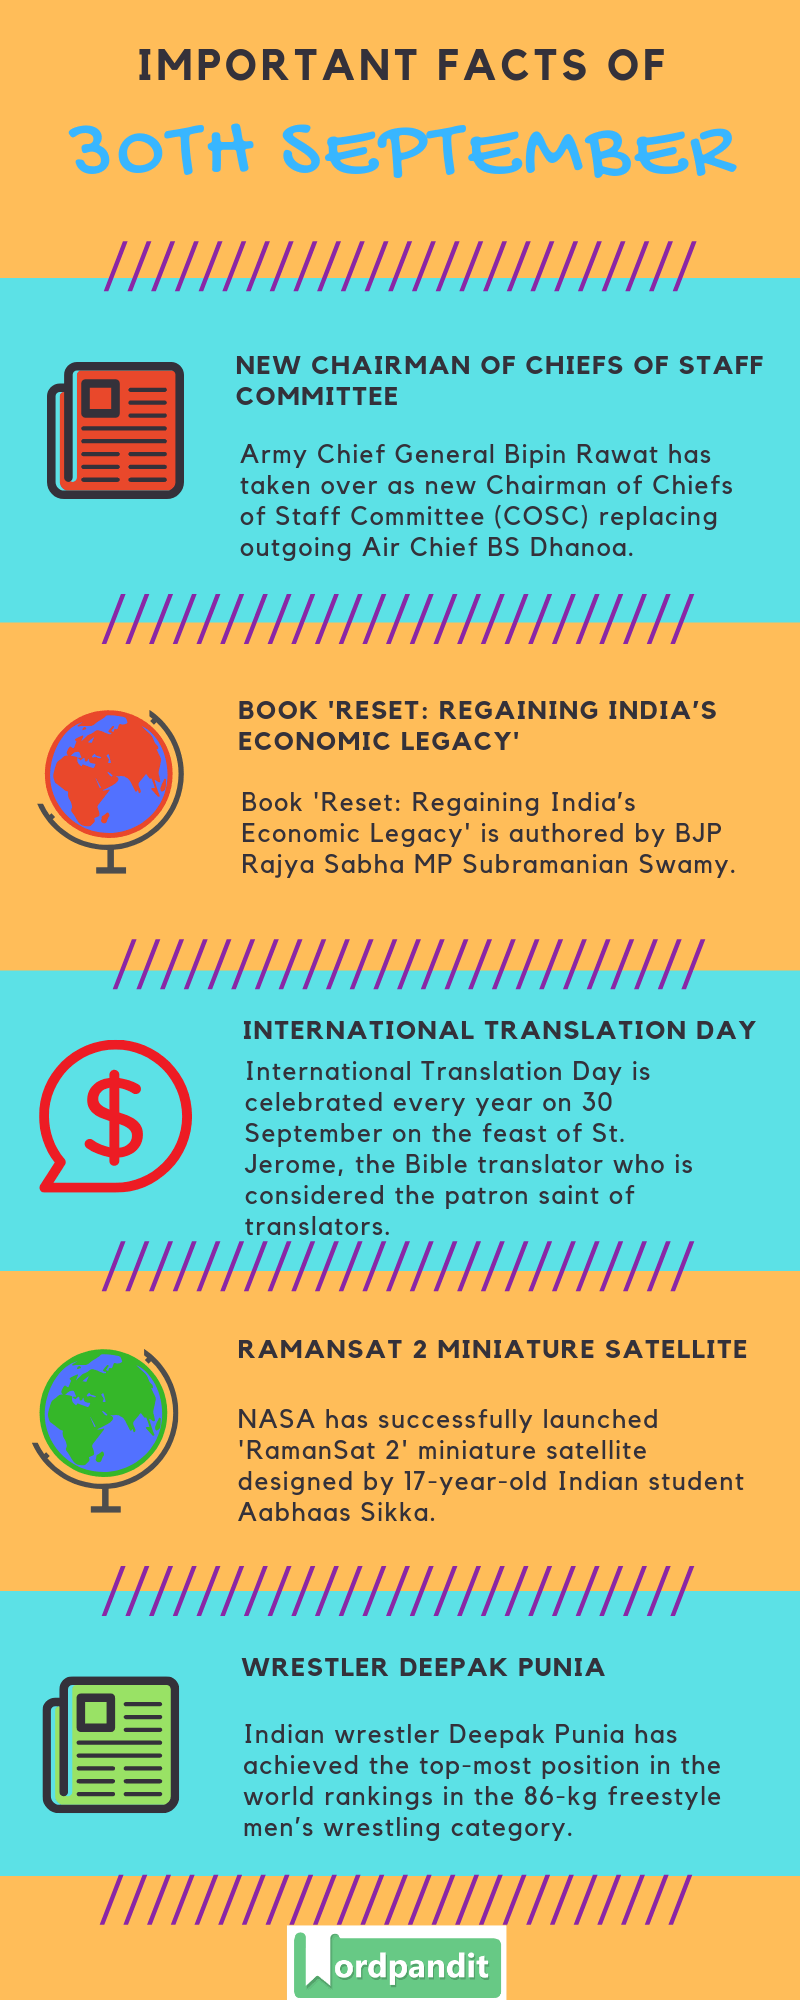 Daily Current Affairs 30 September 2019 Current Affairs Quiz 30 September 2019 Current Affairs Infographic